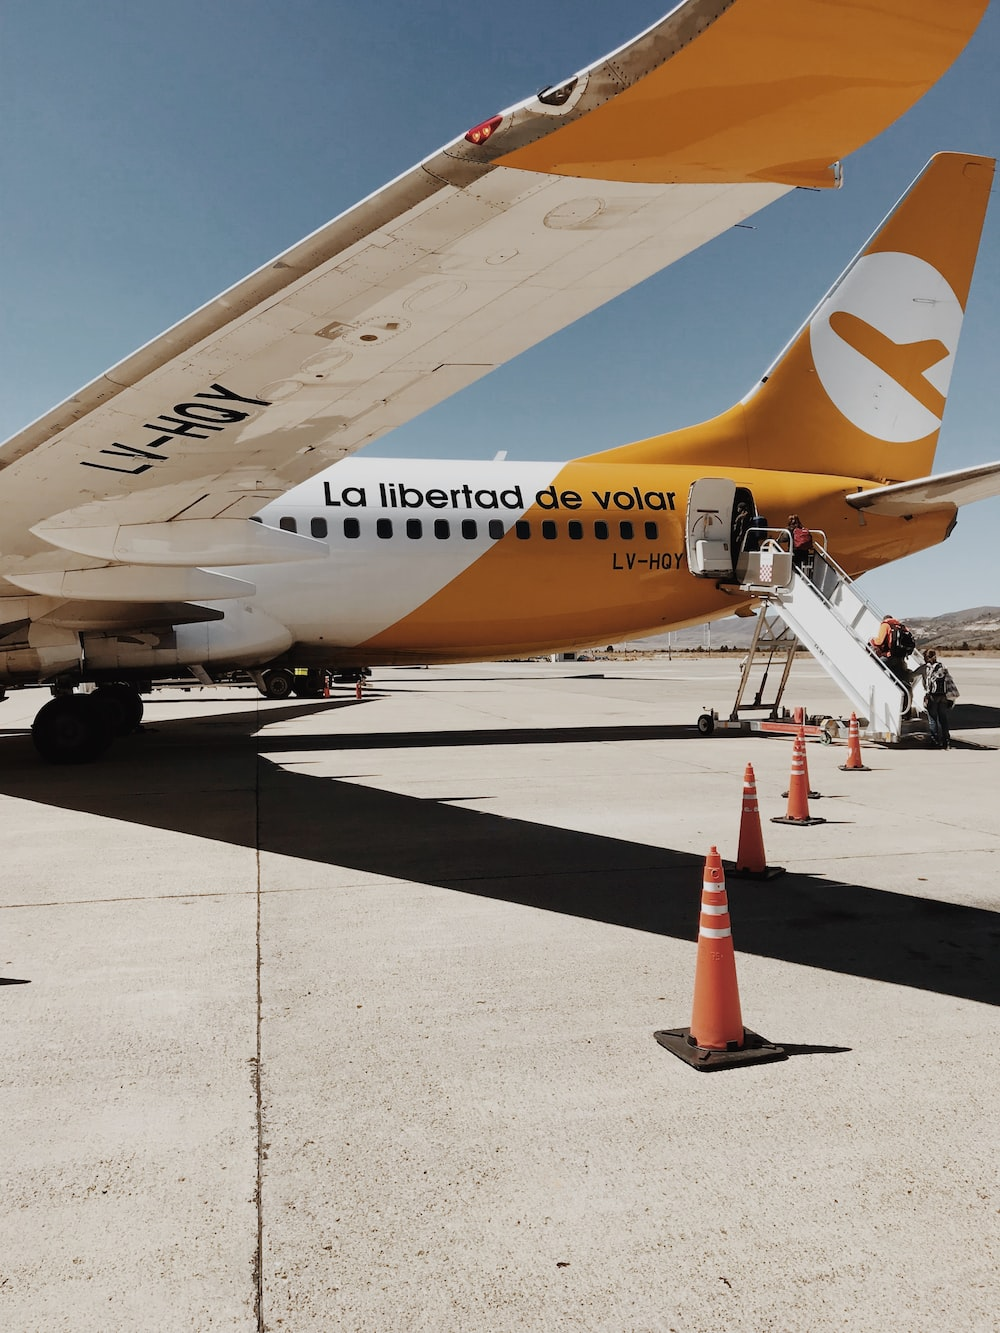 traffic cones beside opened plane at airport during daytime